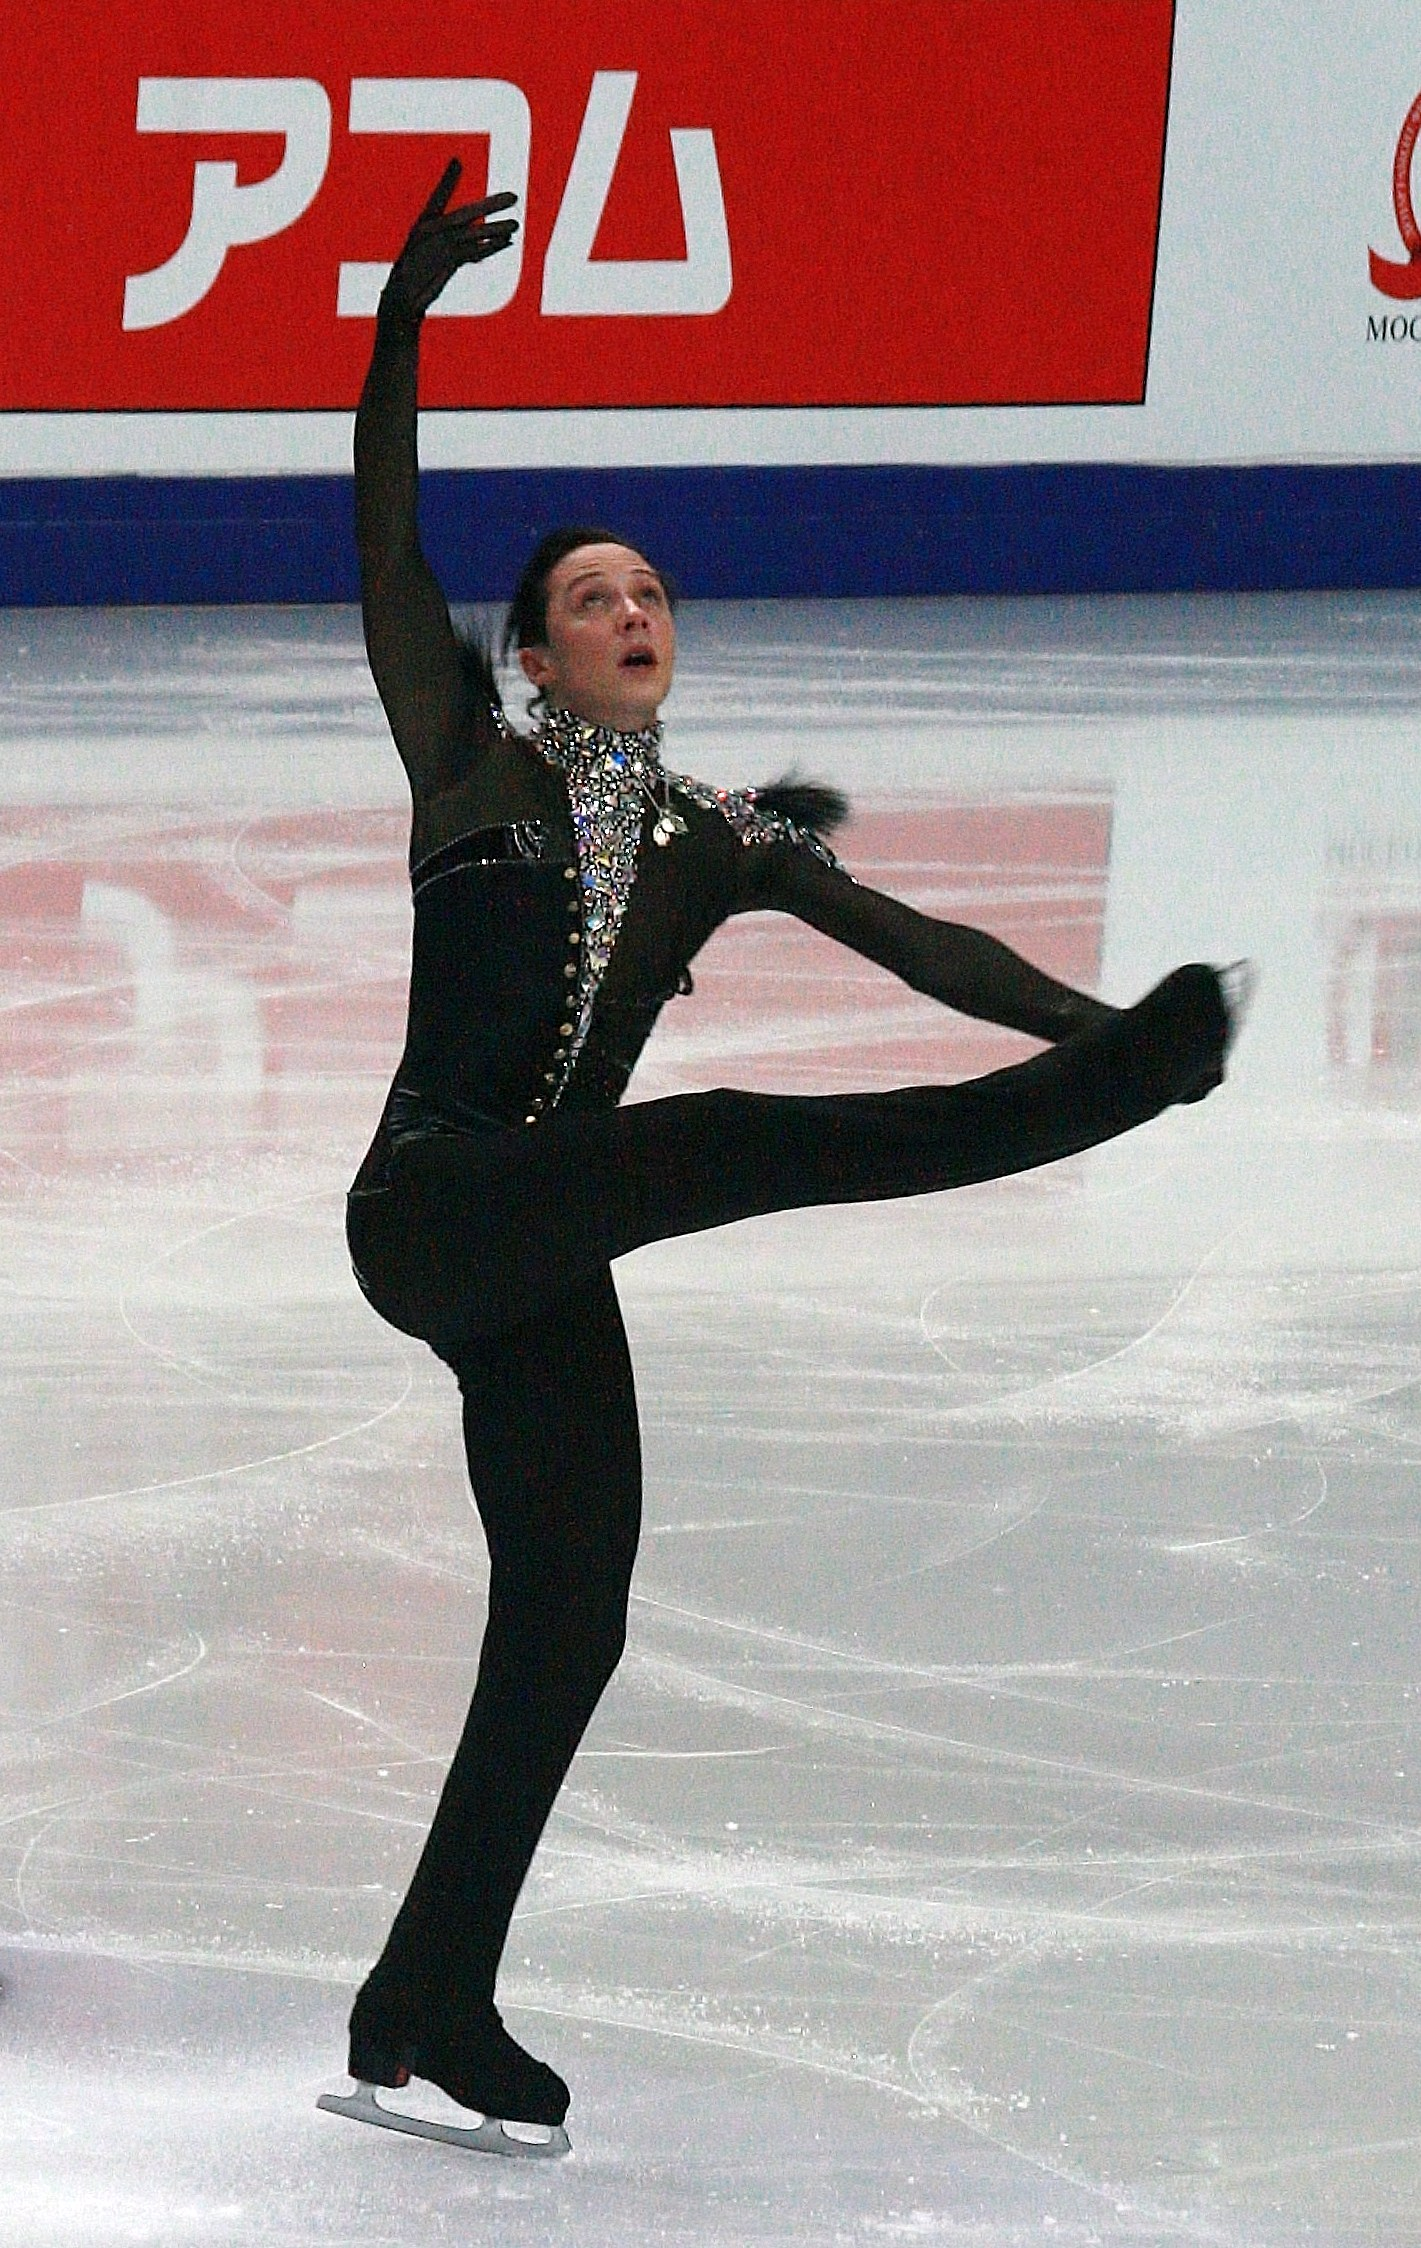 ddc806a1974f File 2012 Rostelecom Cup 01d 569 Johnny WEIR.JPG - Wikimedia Commons